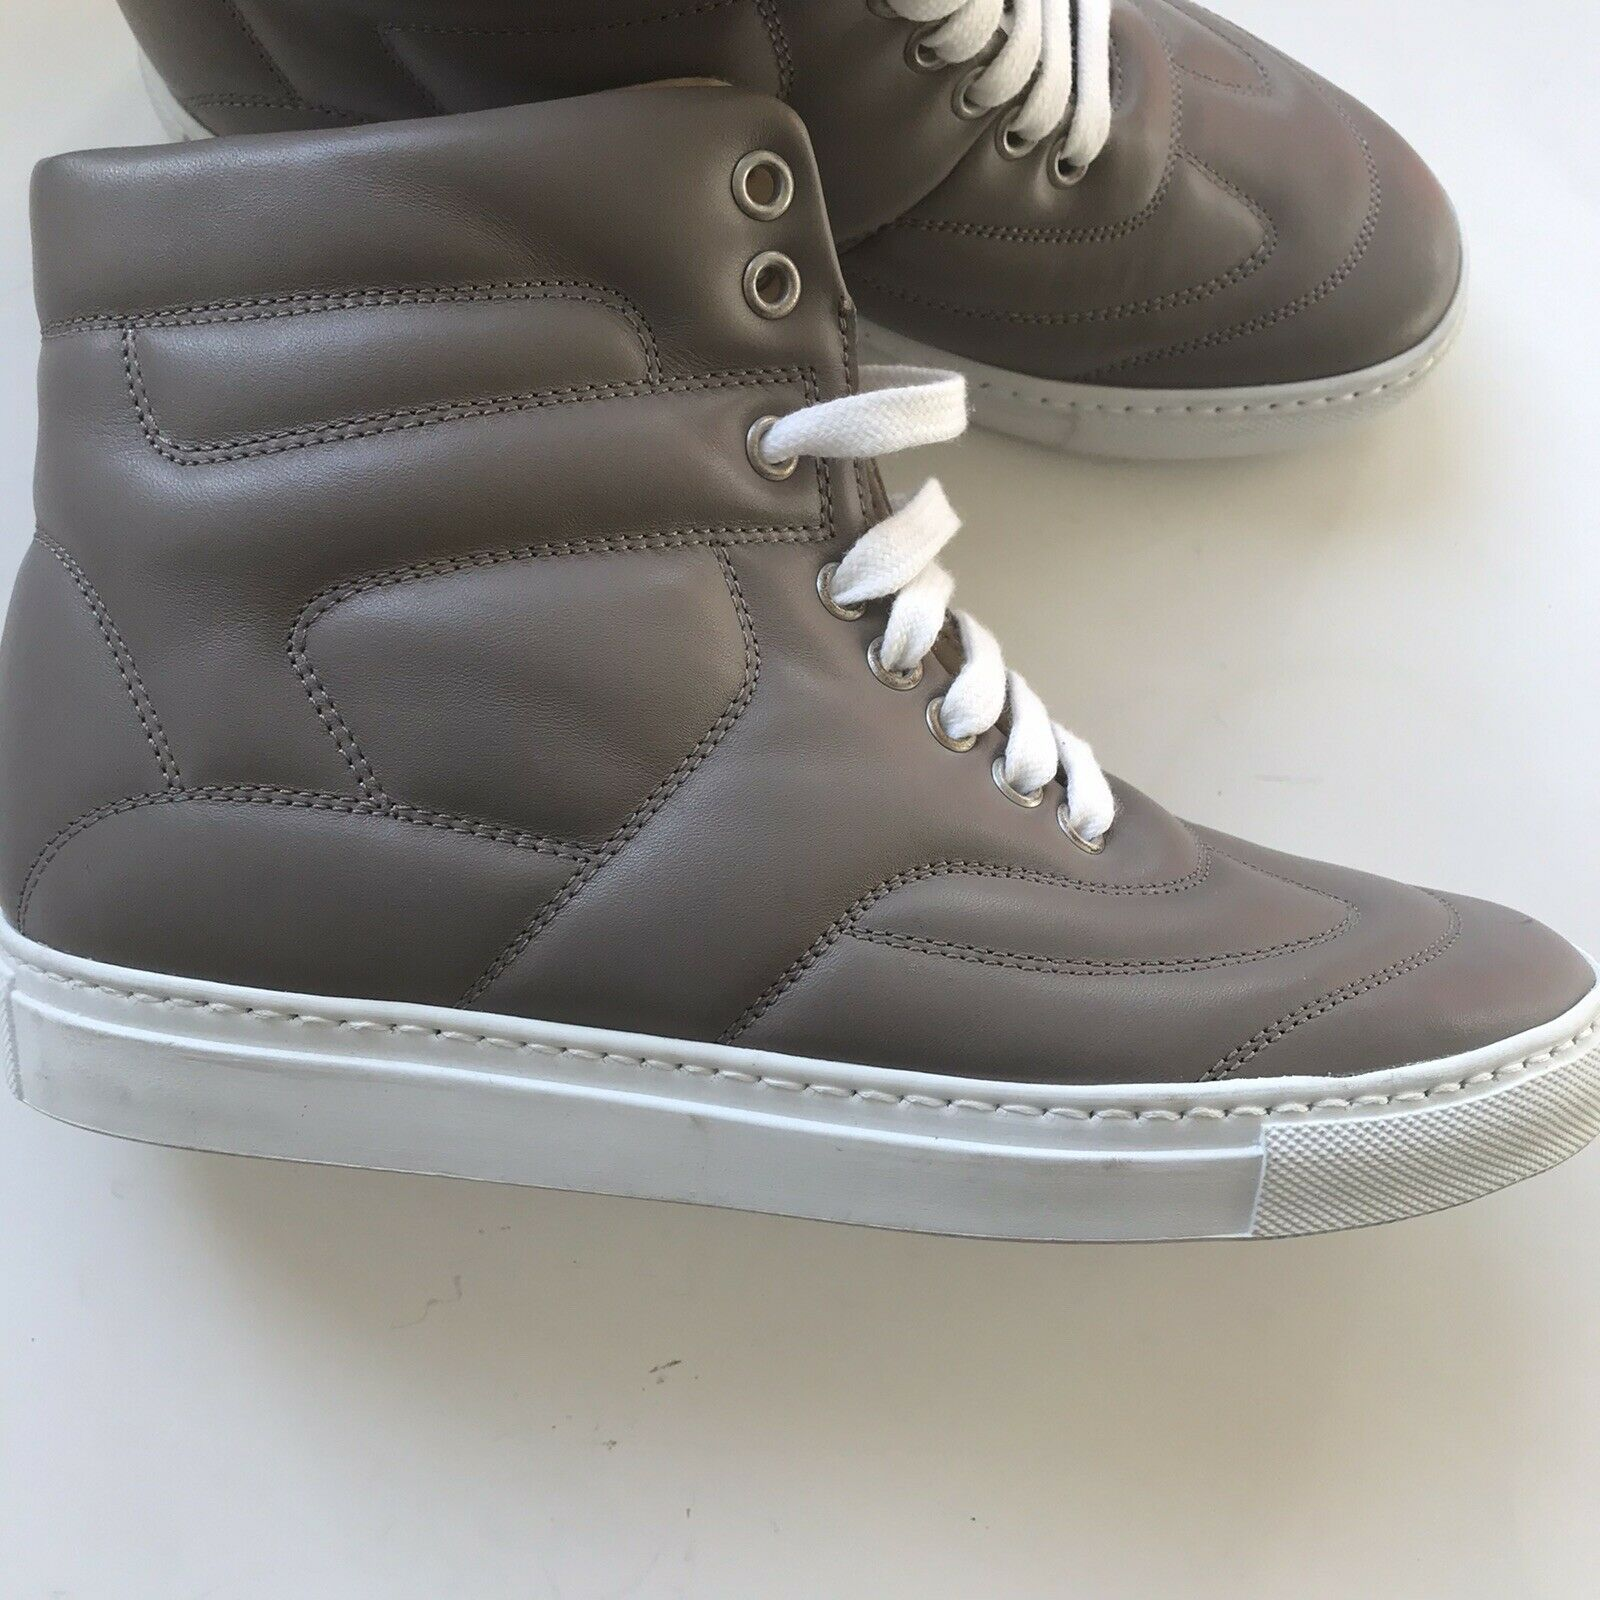 MM6 Martin Margiela Woman's Leather Sneakers Shoe… - image 2